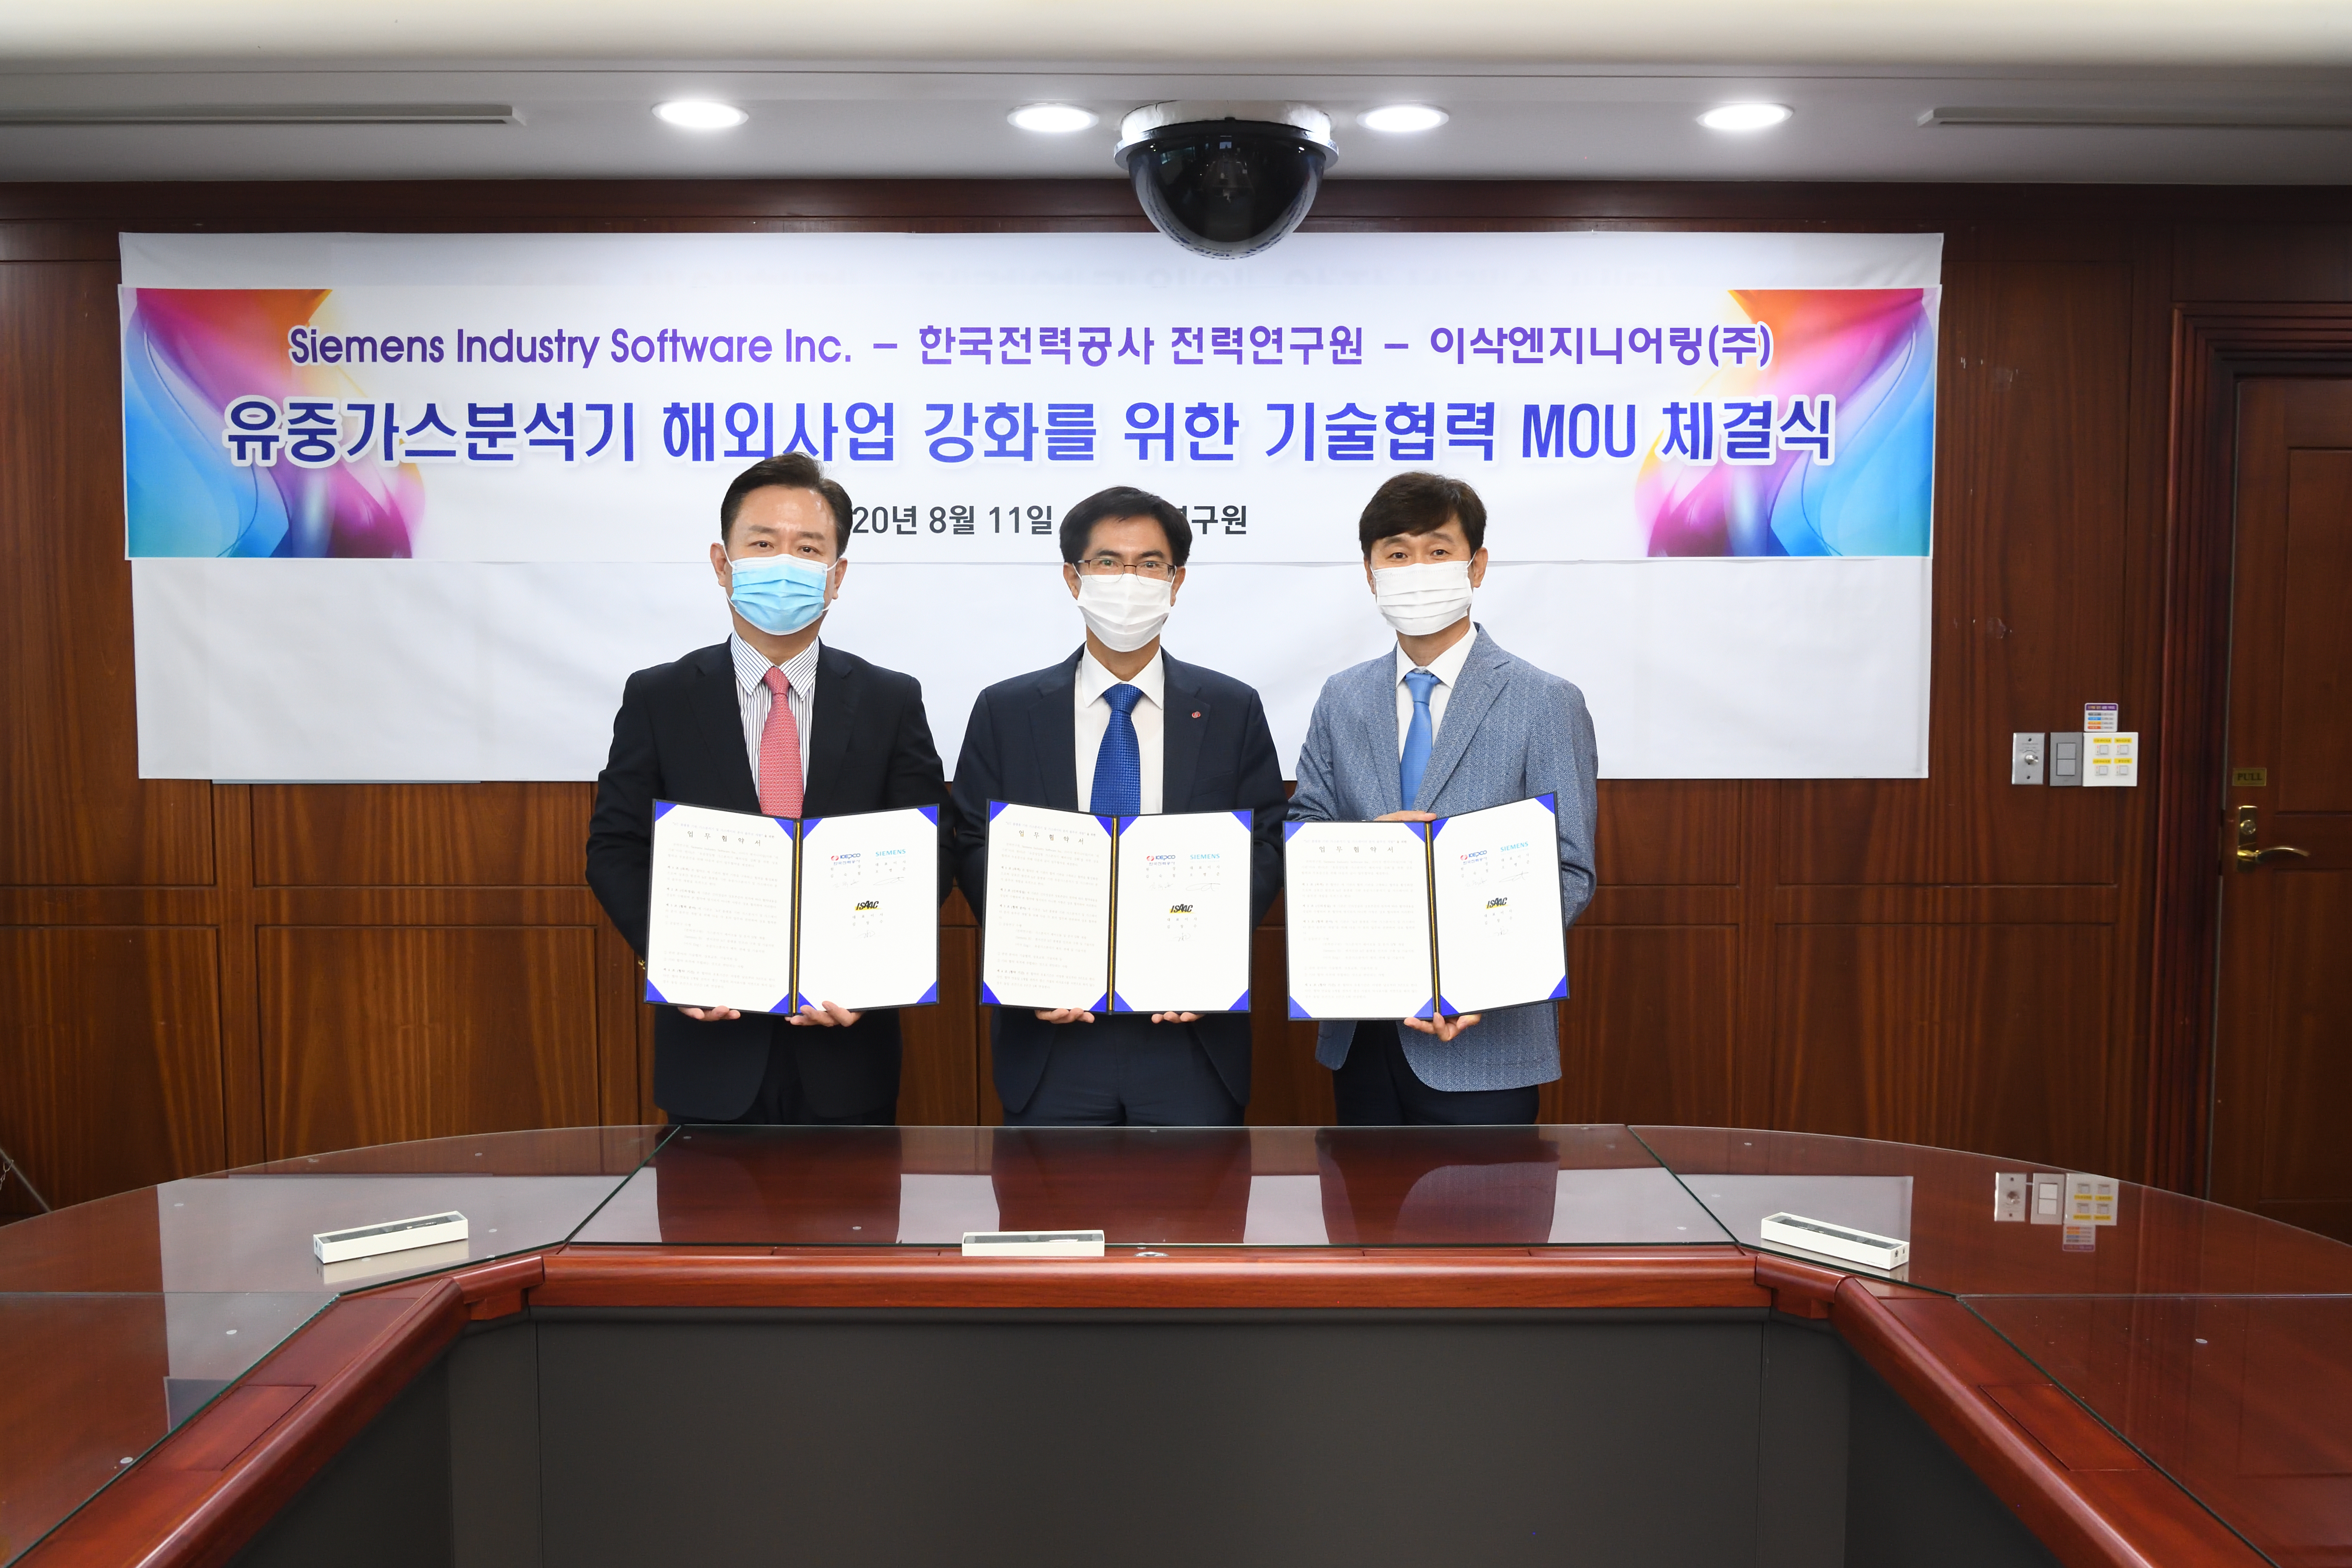 MOU with KEPCO Electric Power Research Institute, Siemens